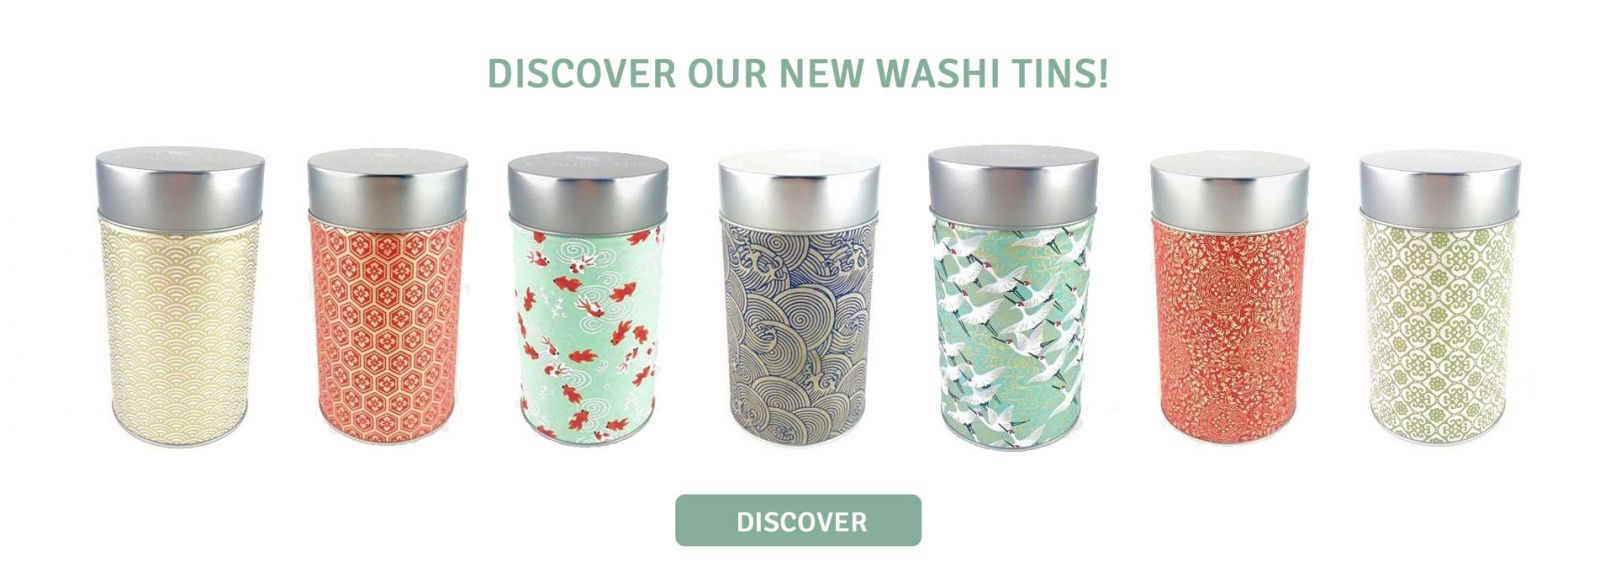 Discover our new washi tins